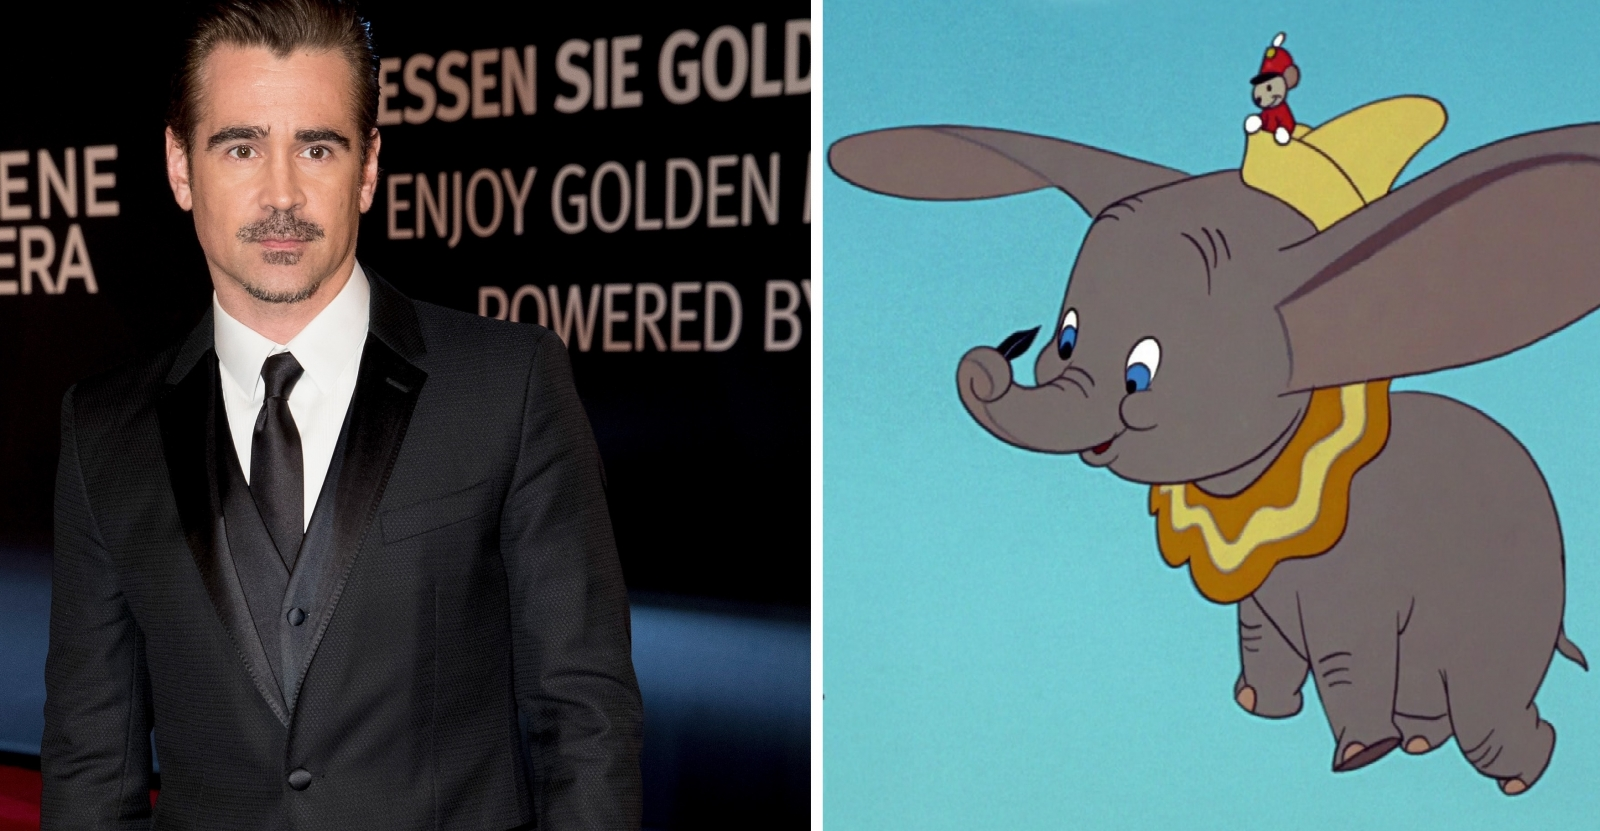 Colin Farrell in talks for Disney's Dumbo